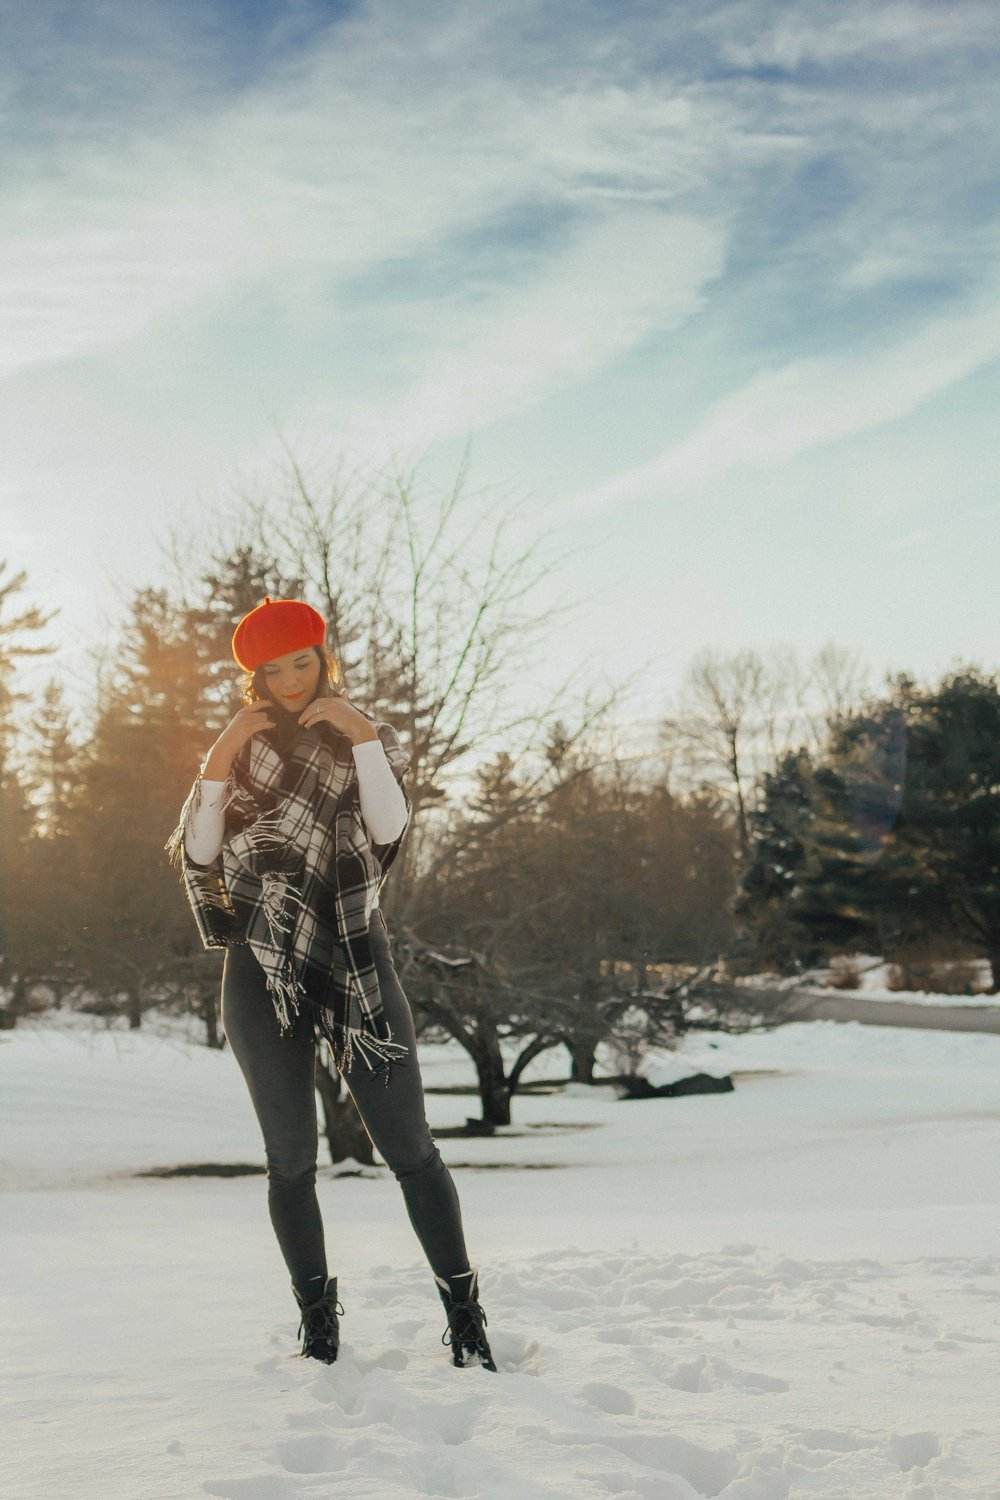 Blanket scarf outfit – Blanket Scarf – Winter Outfits Ideas for Women- Red Beret Outfits – Sorel Wedge Outfit ideas – Winter Hat Outfits – Red Hat Outfits ideas #beret #sorel #winteroutfits #heartandseam www.heartandseam.com